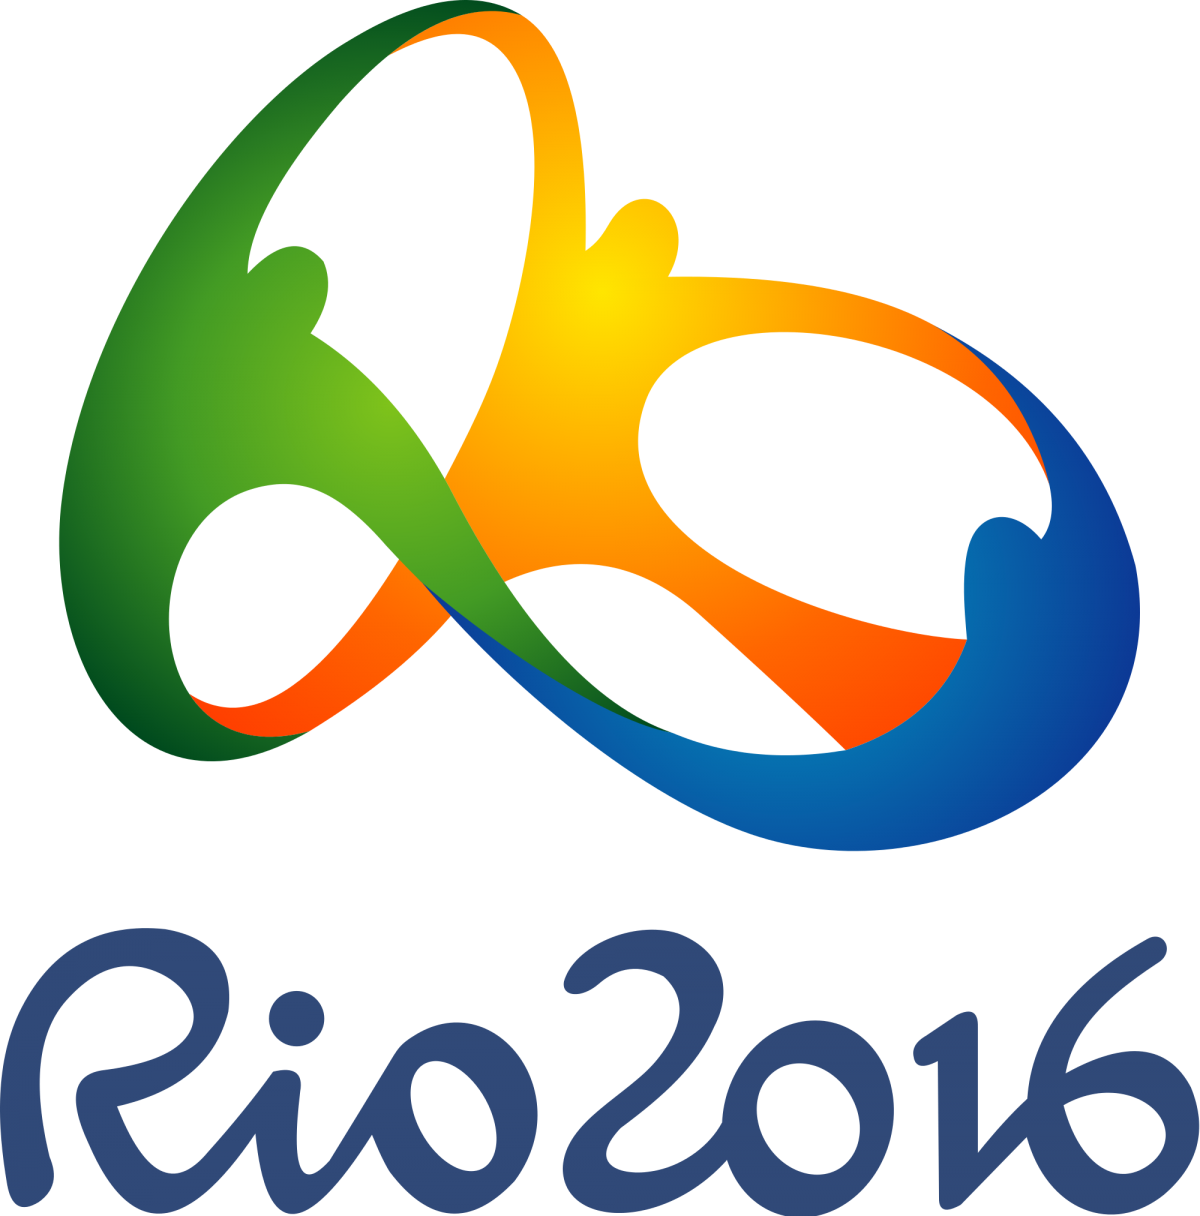 Celebrate the 2016 Olympic Games with Winchester Caravans